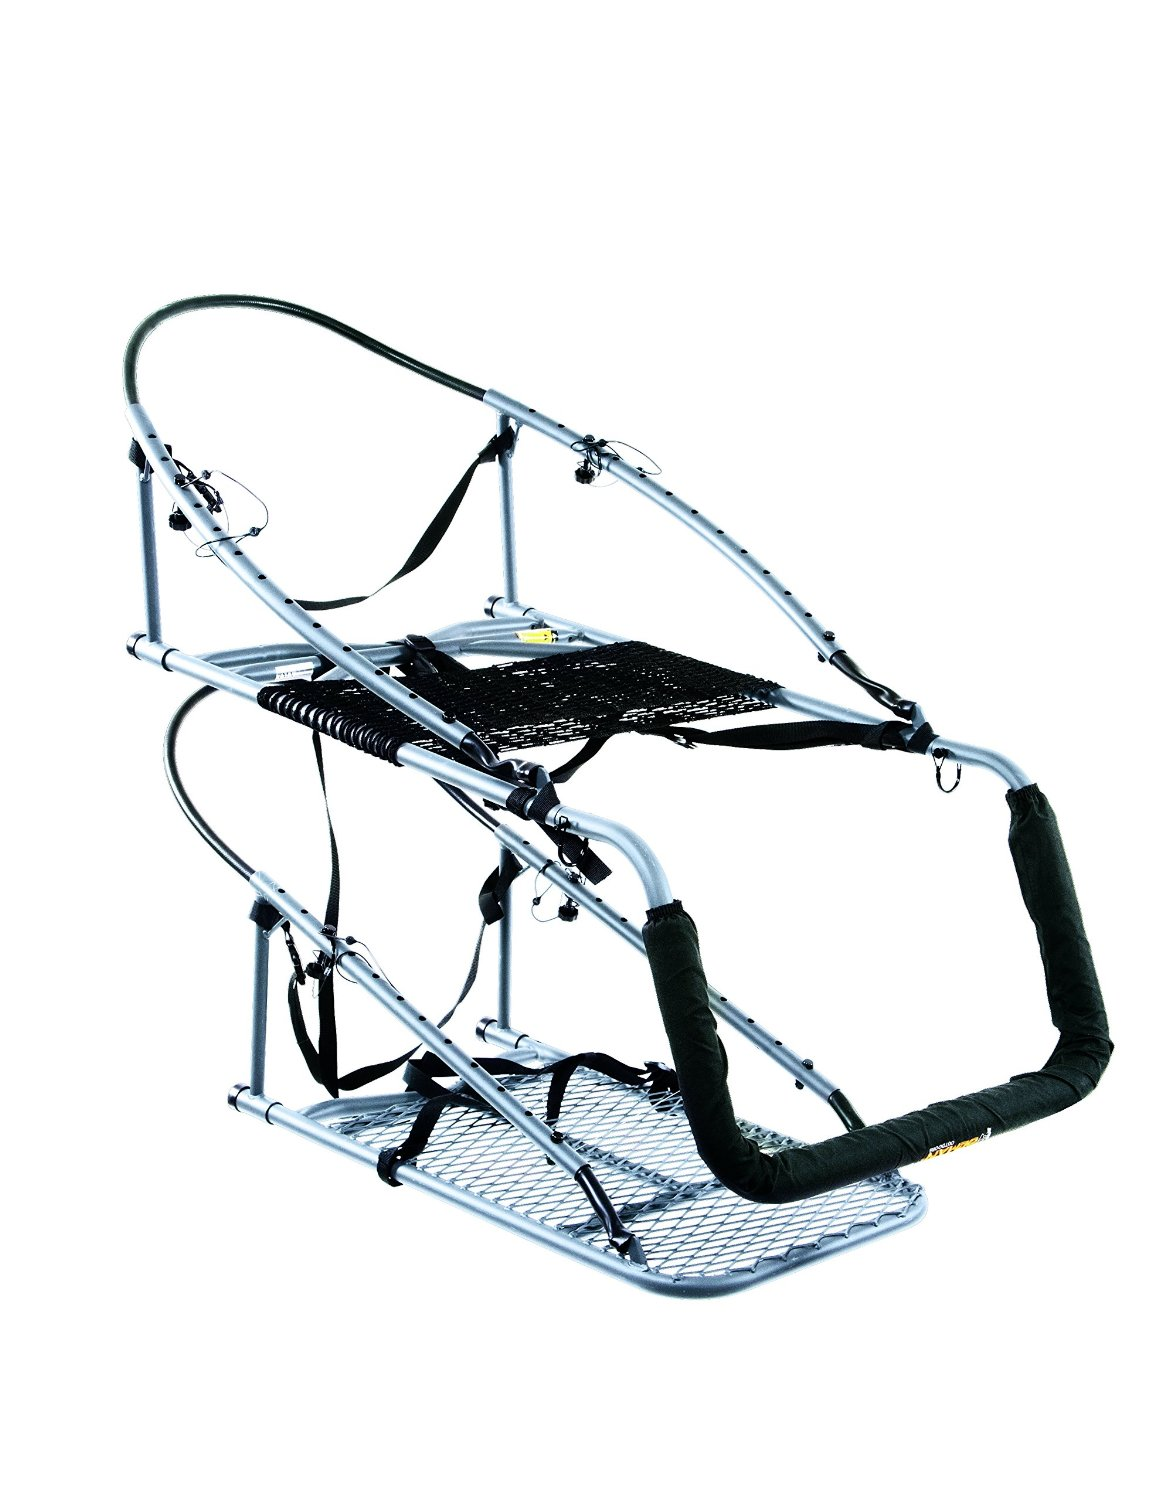 Bow hunting chair - Best Climbing Tree Stand For Bow Hunting Ol Man Multi Vision Steel